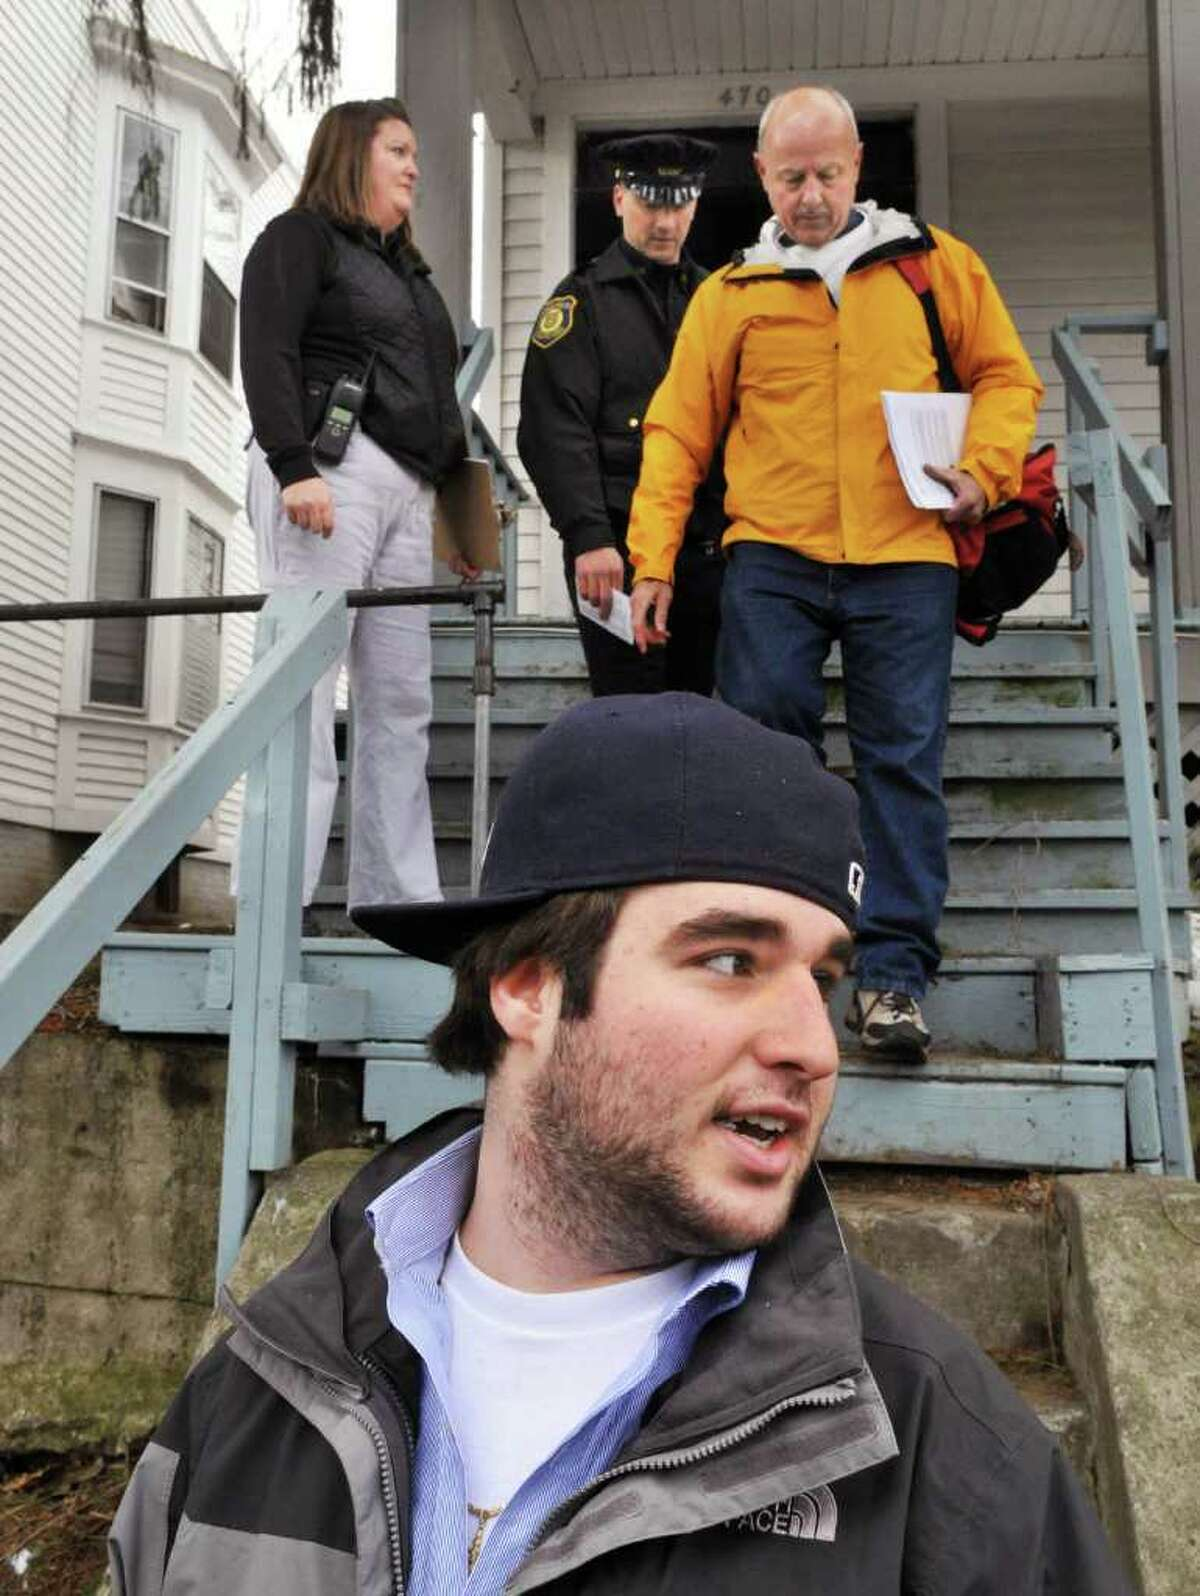 UAlbany student Michael Tropiano, 19, of Albany (in foreground) speaks with reporters as Albany police officers Janet Zalatan, left, and Rich Romand together with UAlbany's director of personal safety and off-campus affairs Thomas Gebhardt (at right) go door to door along Hudson Ave. in Albany Wednesday afternoon March 16, 2011, speaking to students following Saturday morning's melee. (John Carl D'Annibale / Times Union)